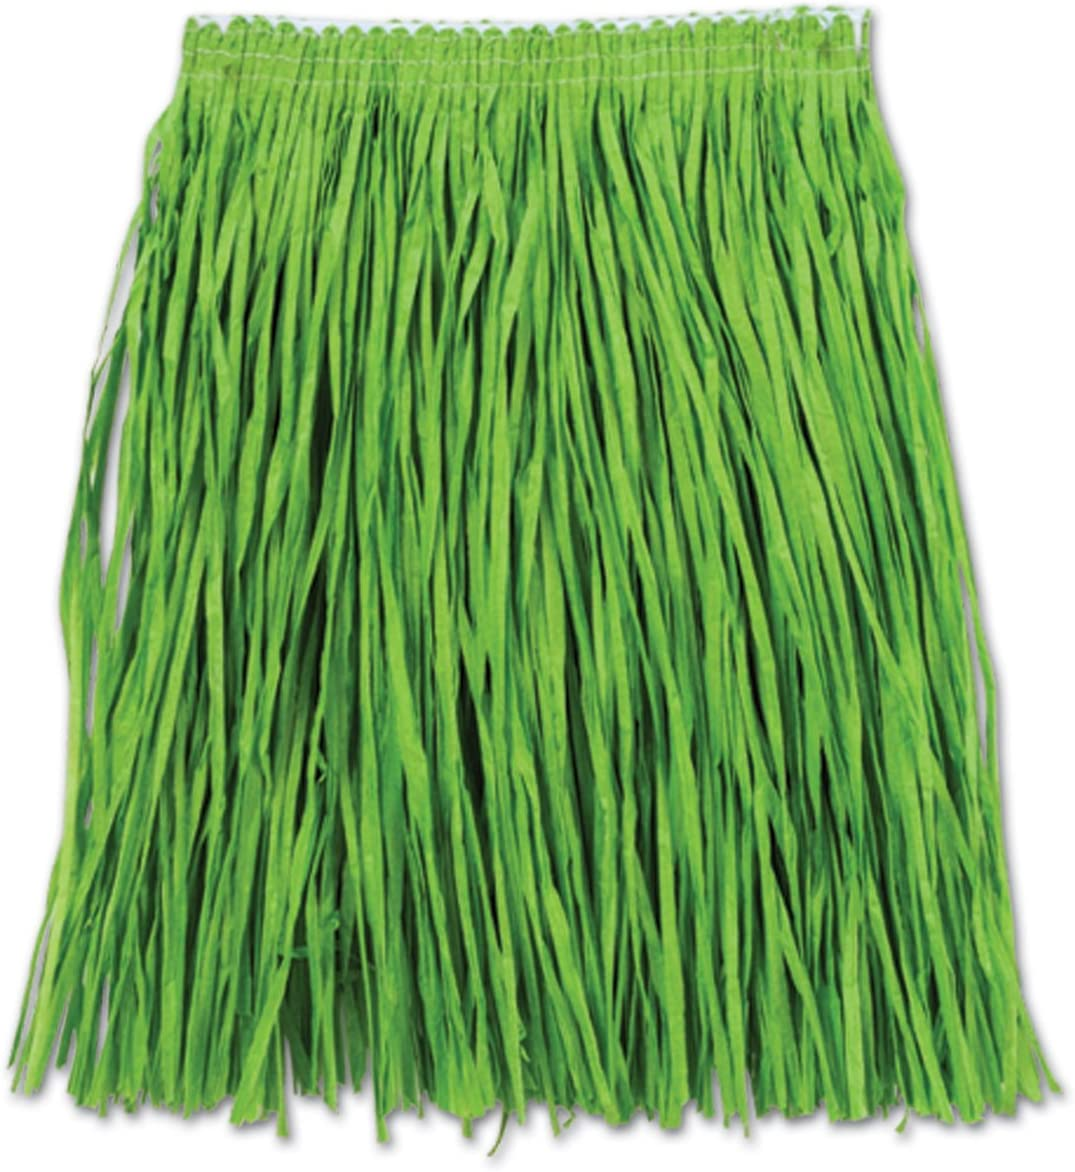 Beistle 54581-G Adult Mini Hula Skirt for Halloween Party, 36-Inch Width by 16-Inch Length